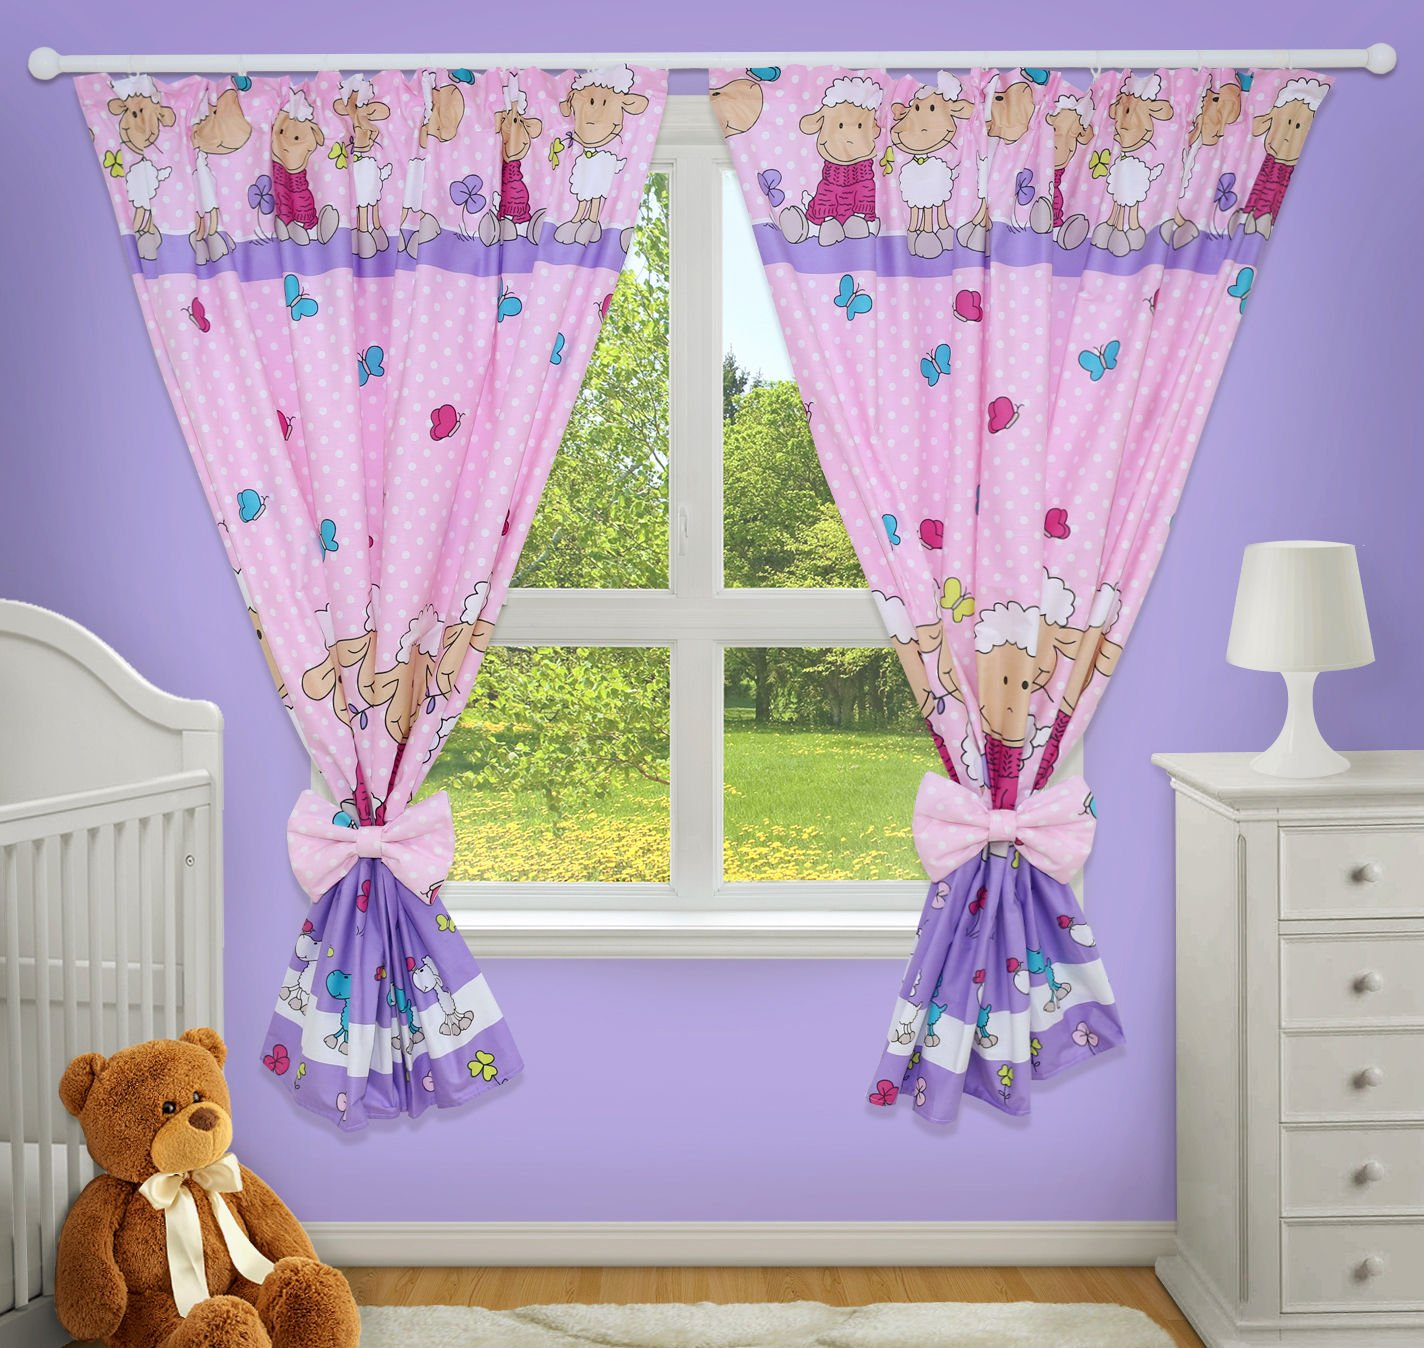 LUXURY DECORATIVE CURTAINS FOR BABY ROOM MATCHING WITH OUR NURSERY BEDDING SETS Ladder cream